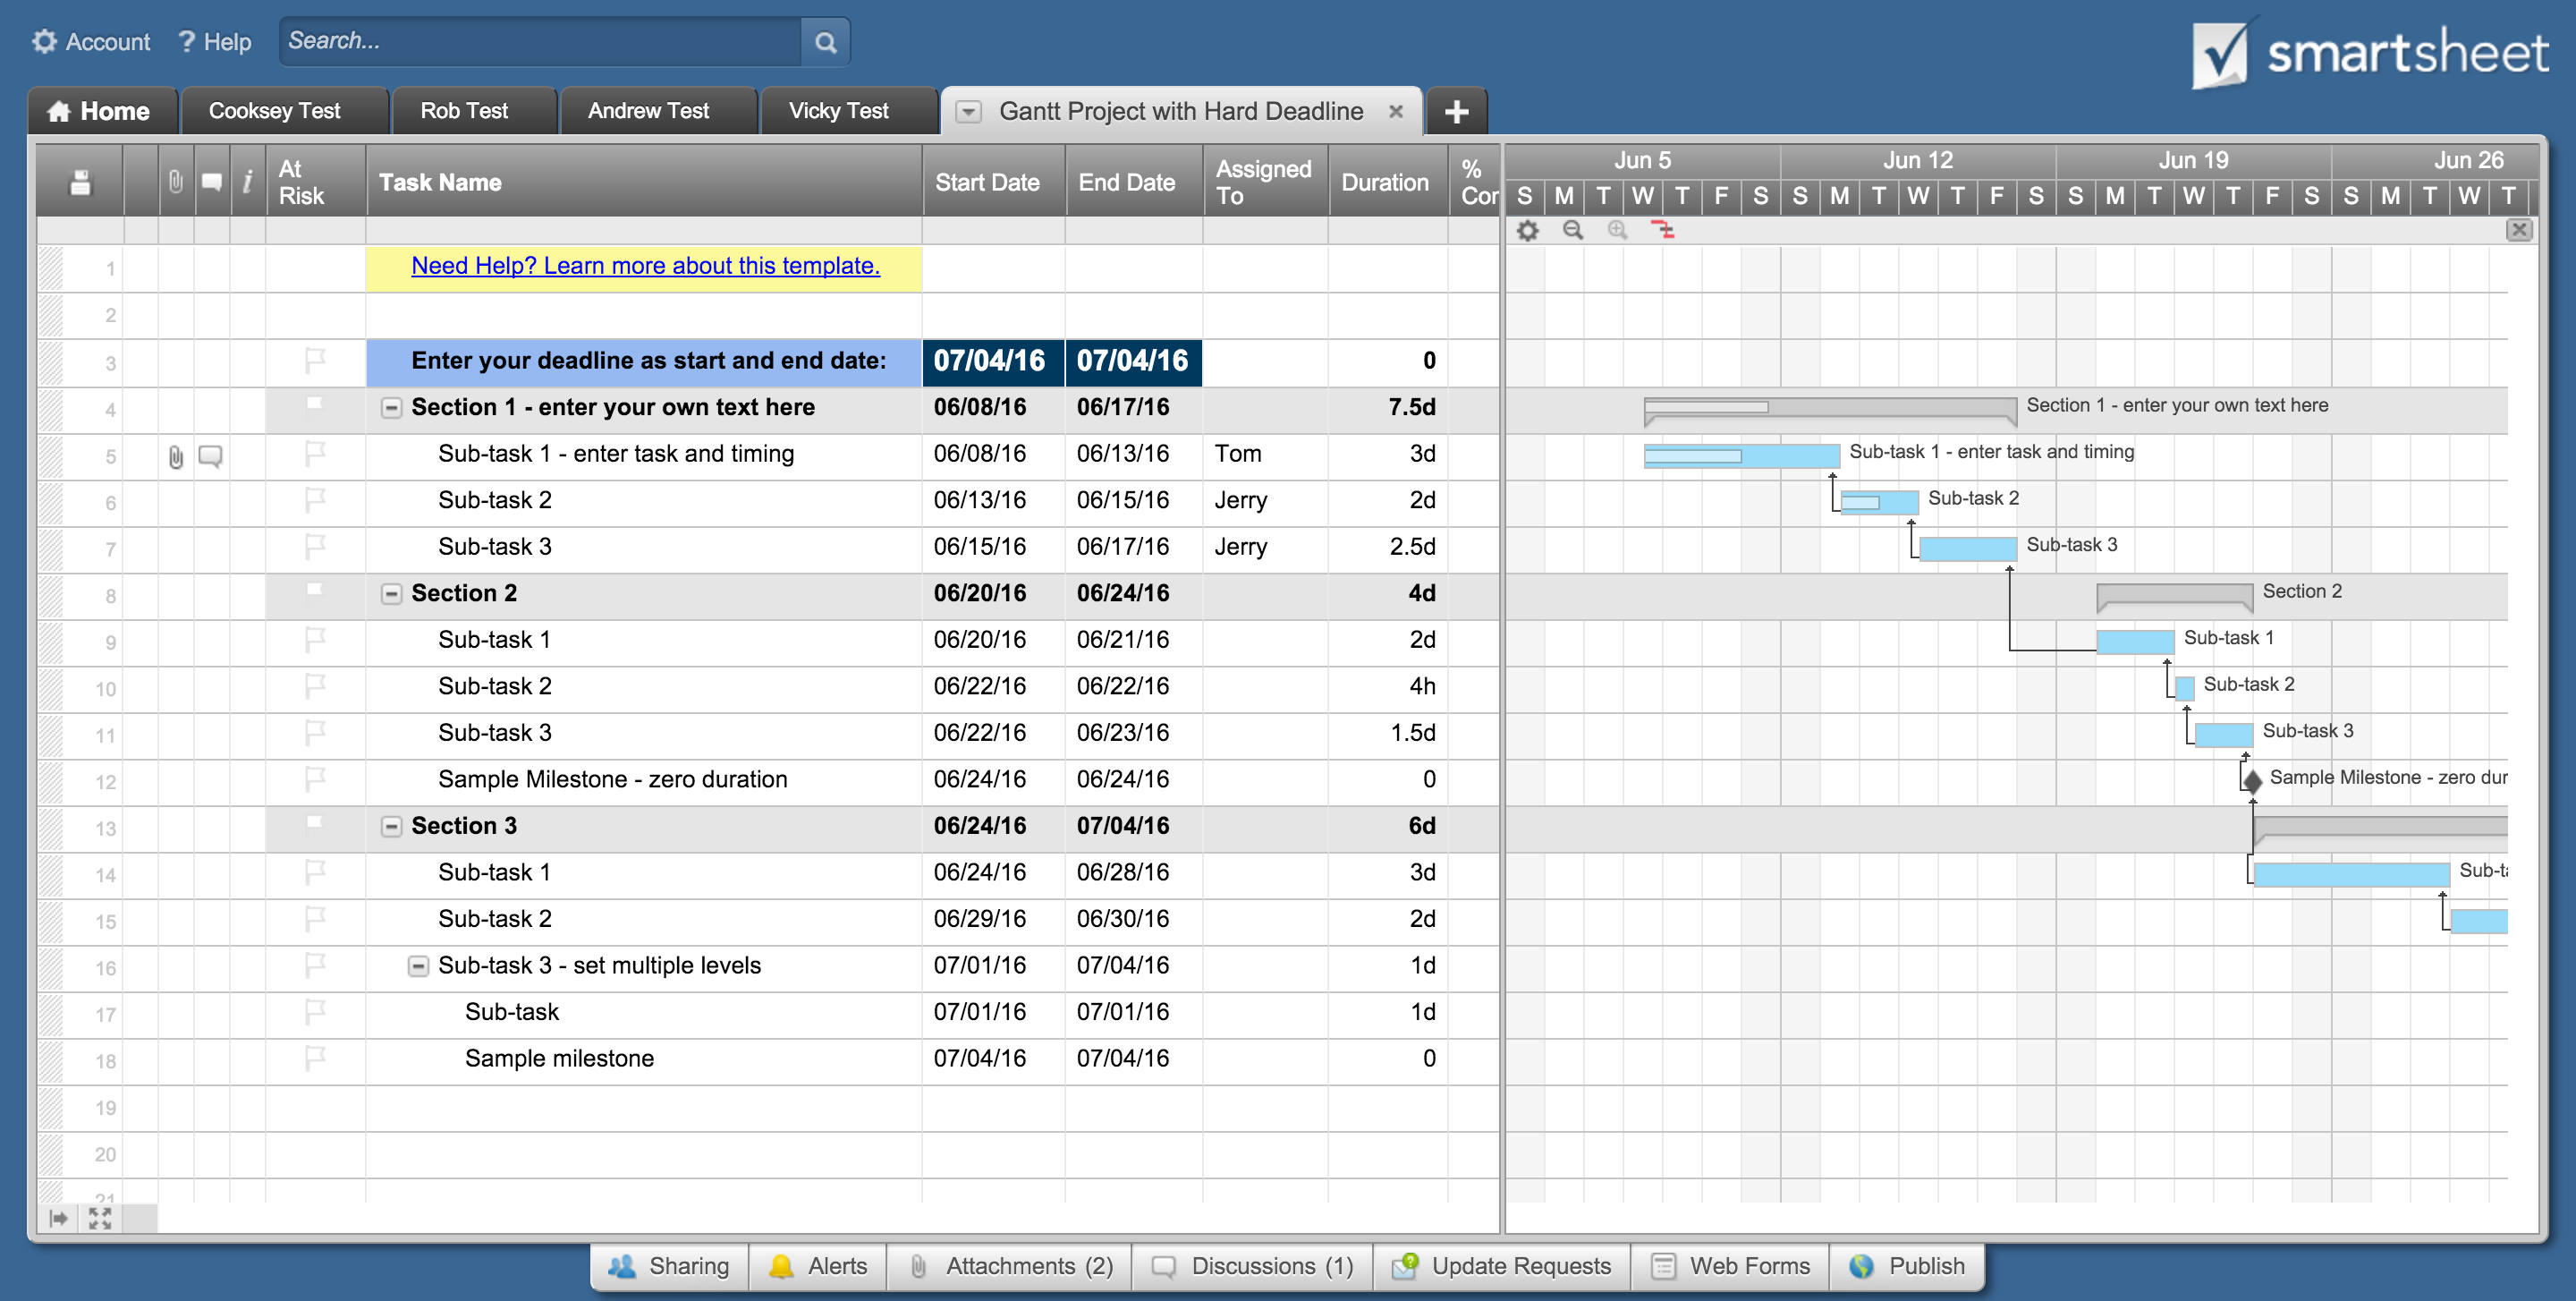 Uses Of Spreadsheet Software For From Visicalc To Google Sheets: The 12 Best Spreadsheet Apps